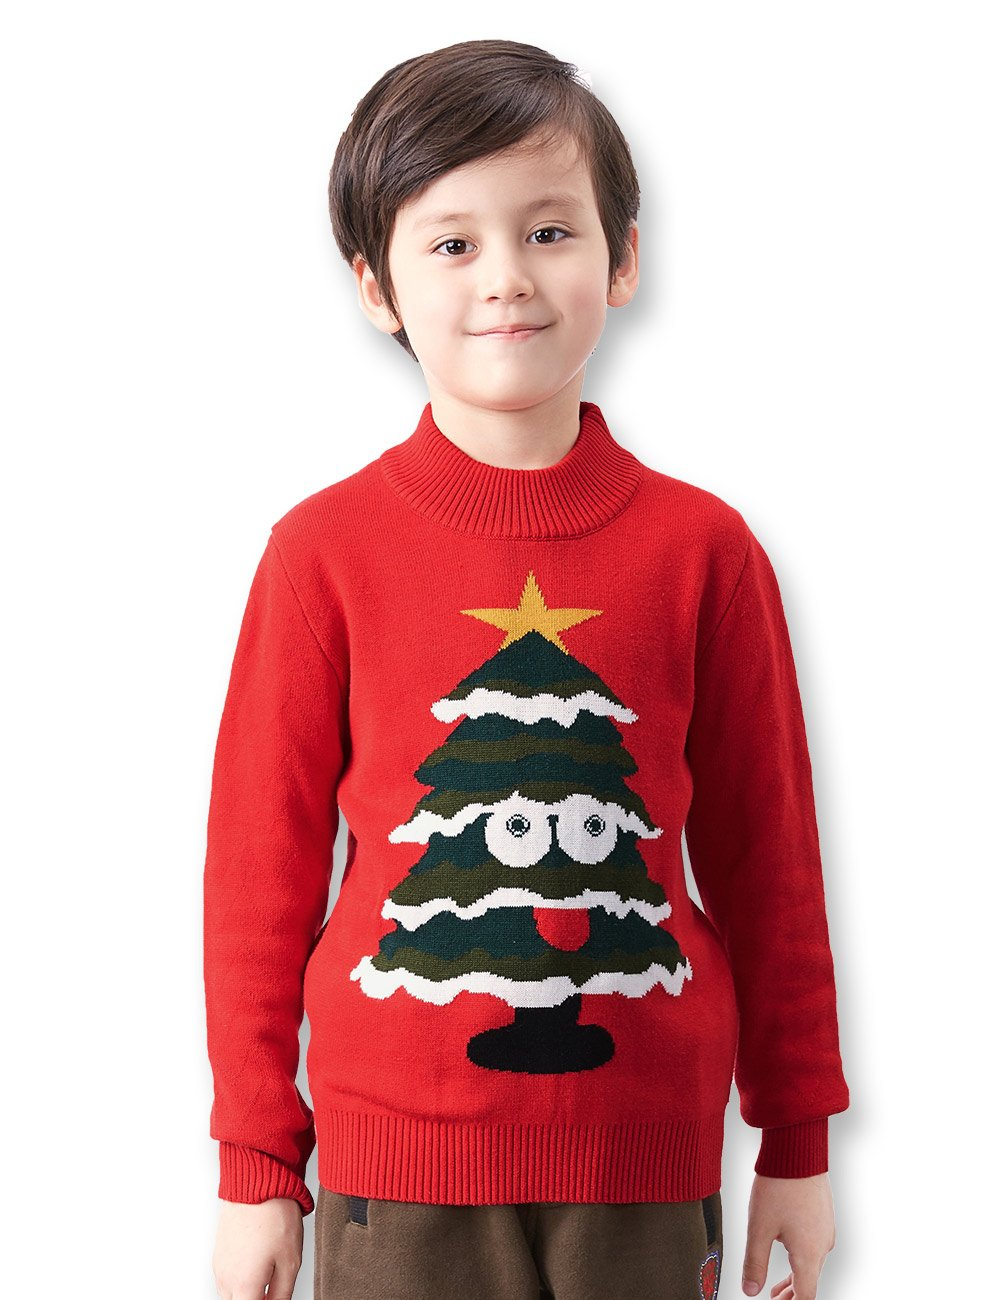 BYCR Boys Cute Smile Tree Knit Pullover Sweater Kids 3-12 Yrs No. 7167100512